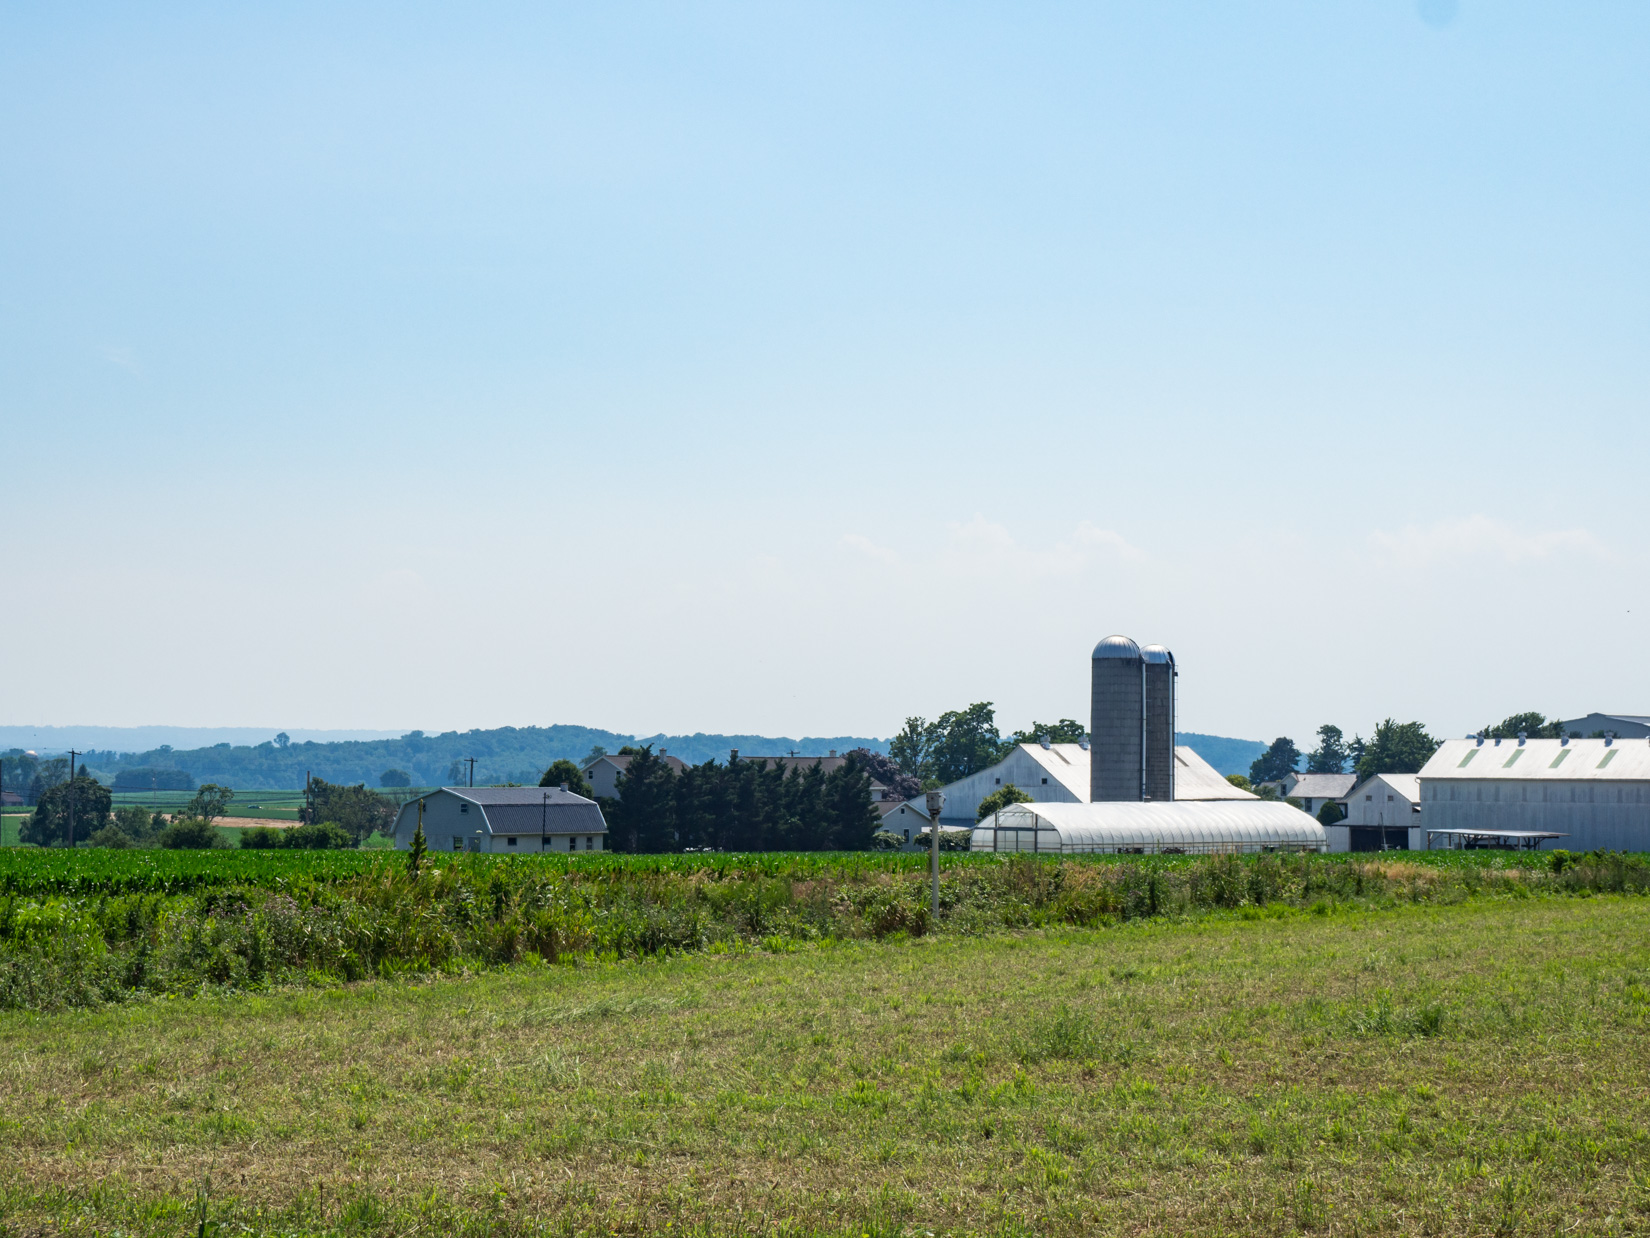 Farmland and Silos